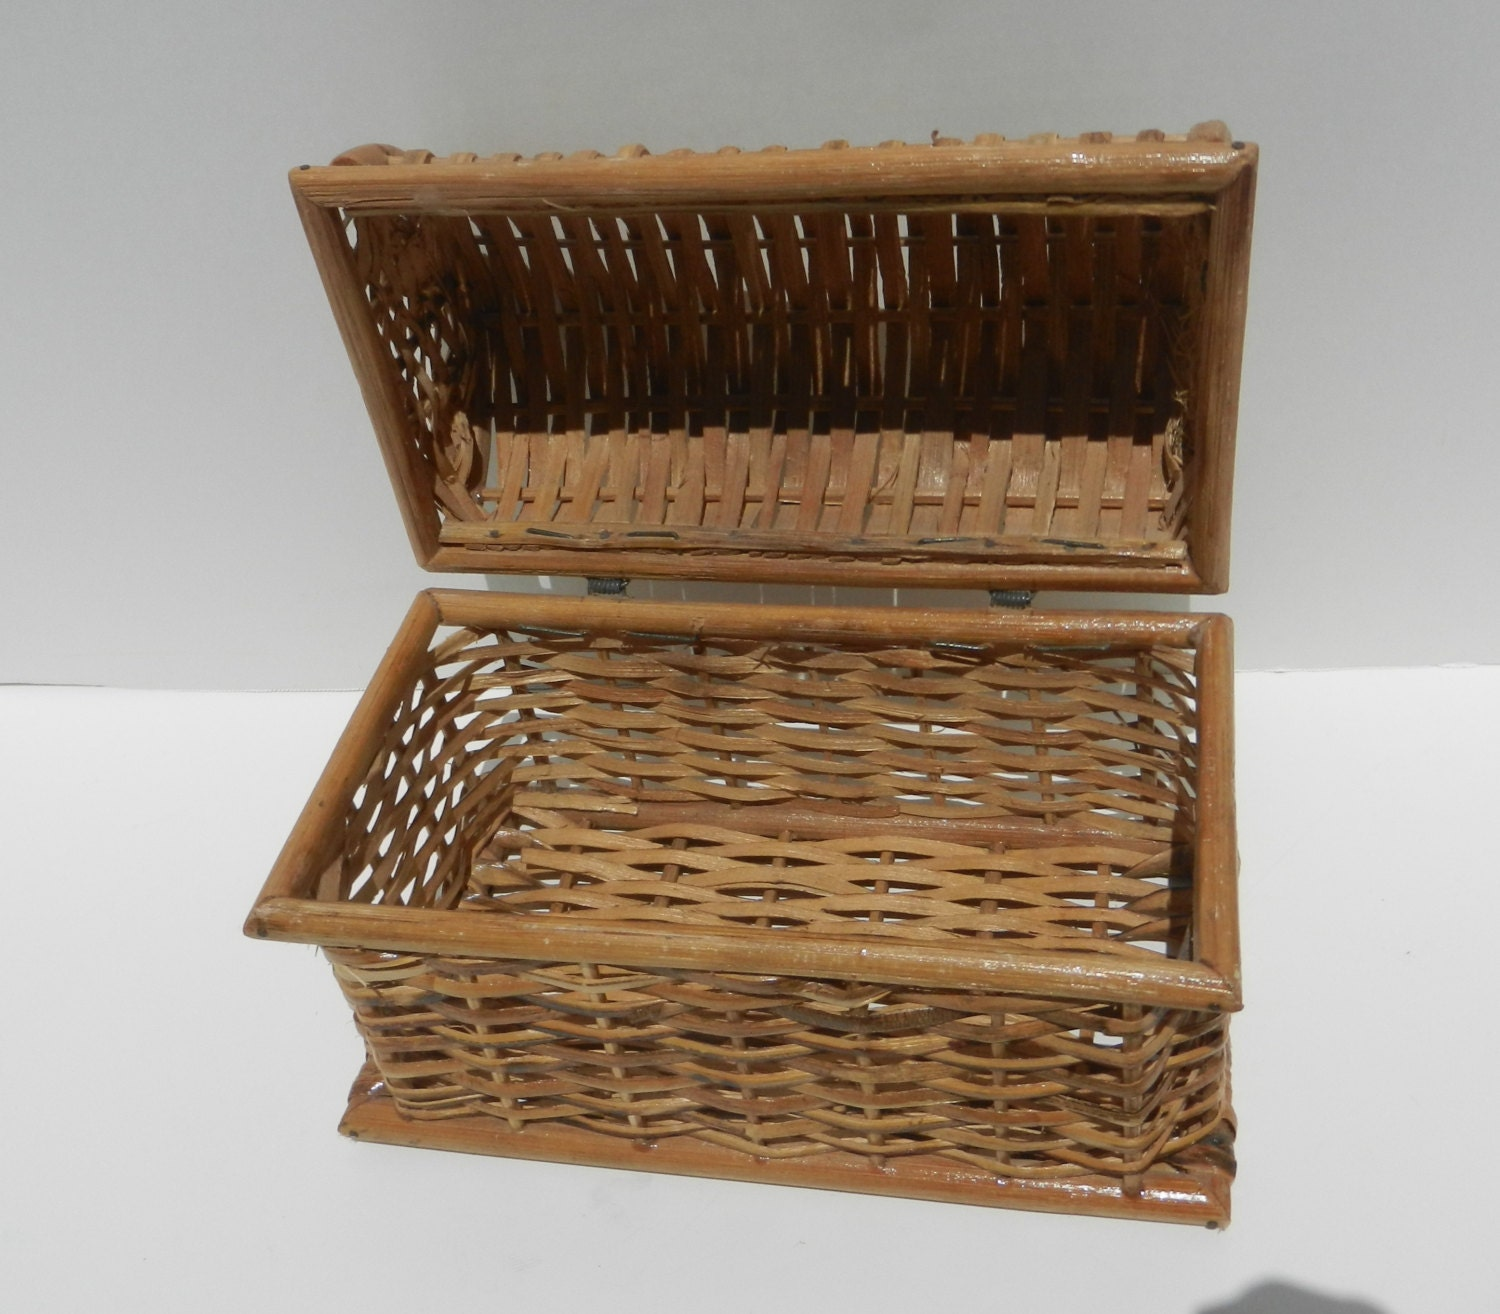 Woven Basket With Hinged Lid : Small vintage wicker chest box with hinged lid for storage